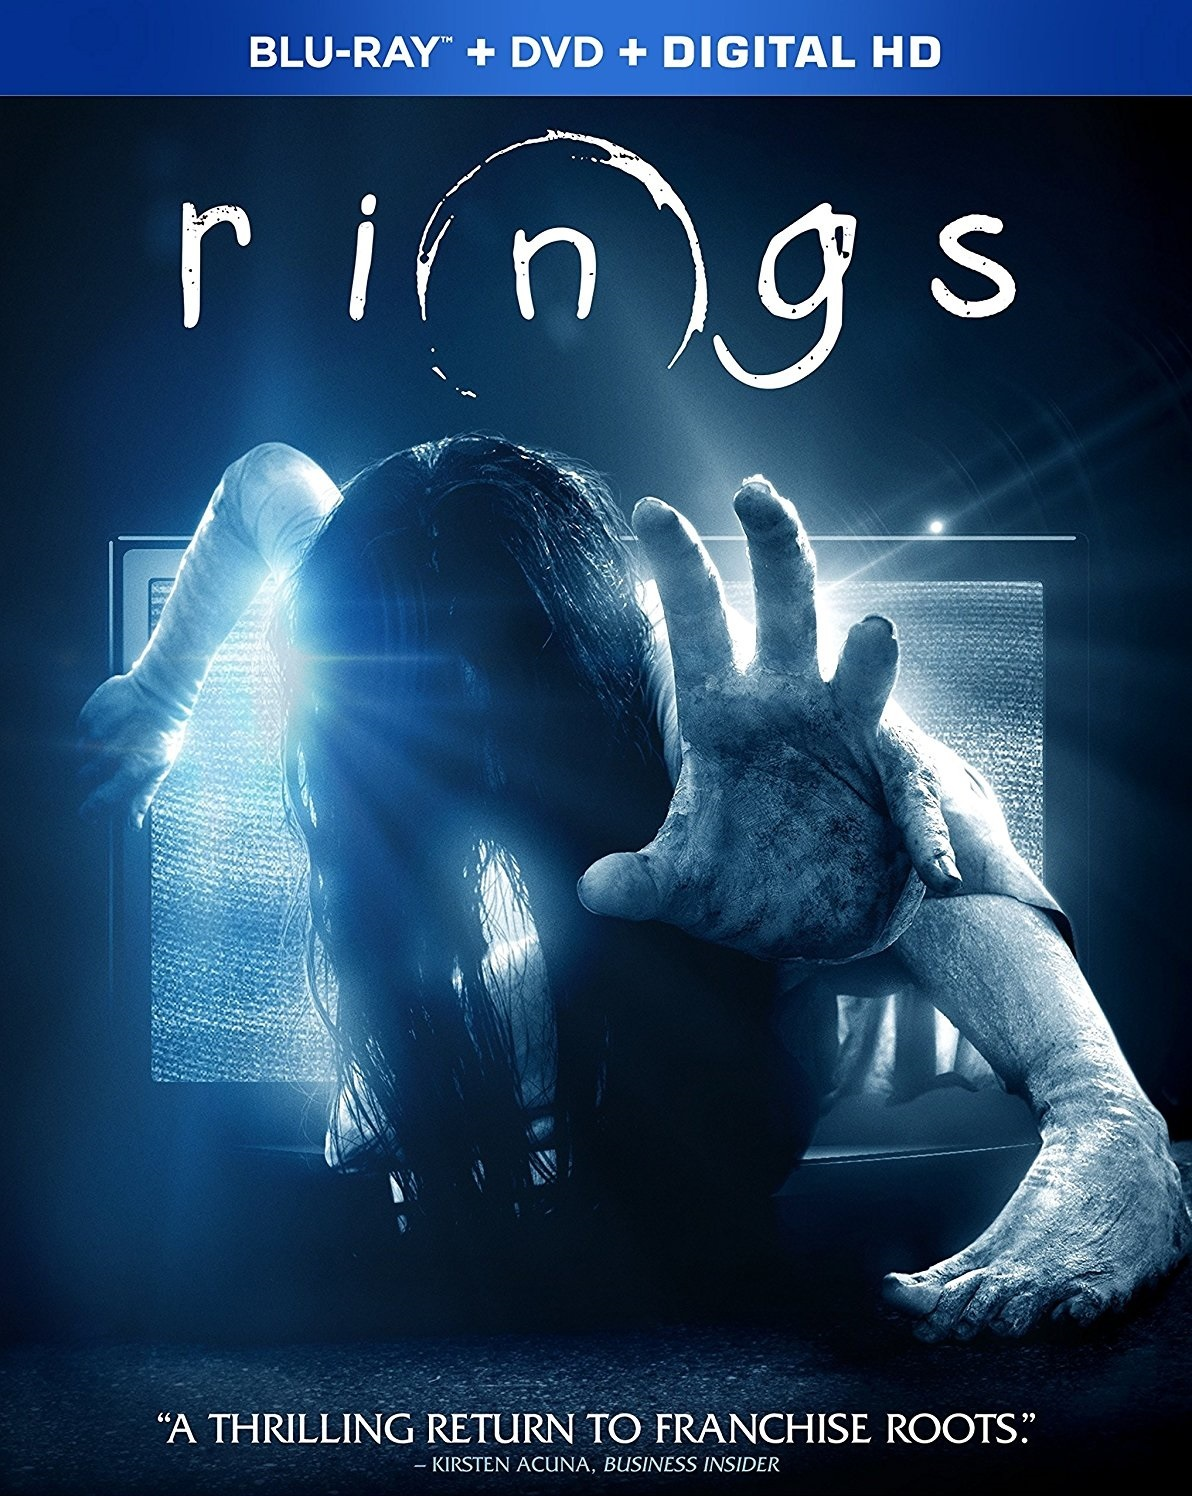 Rings (2017) poster image